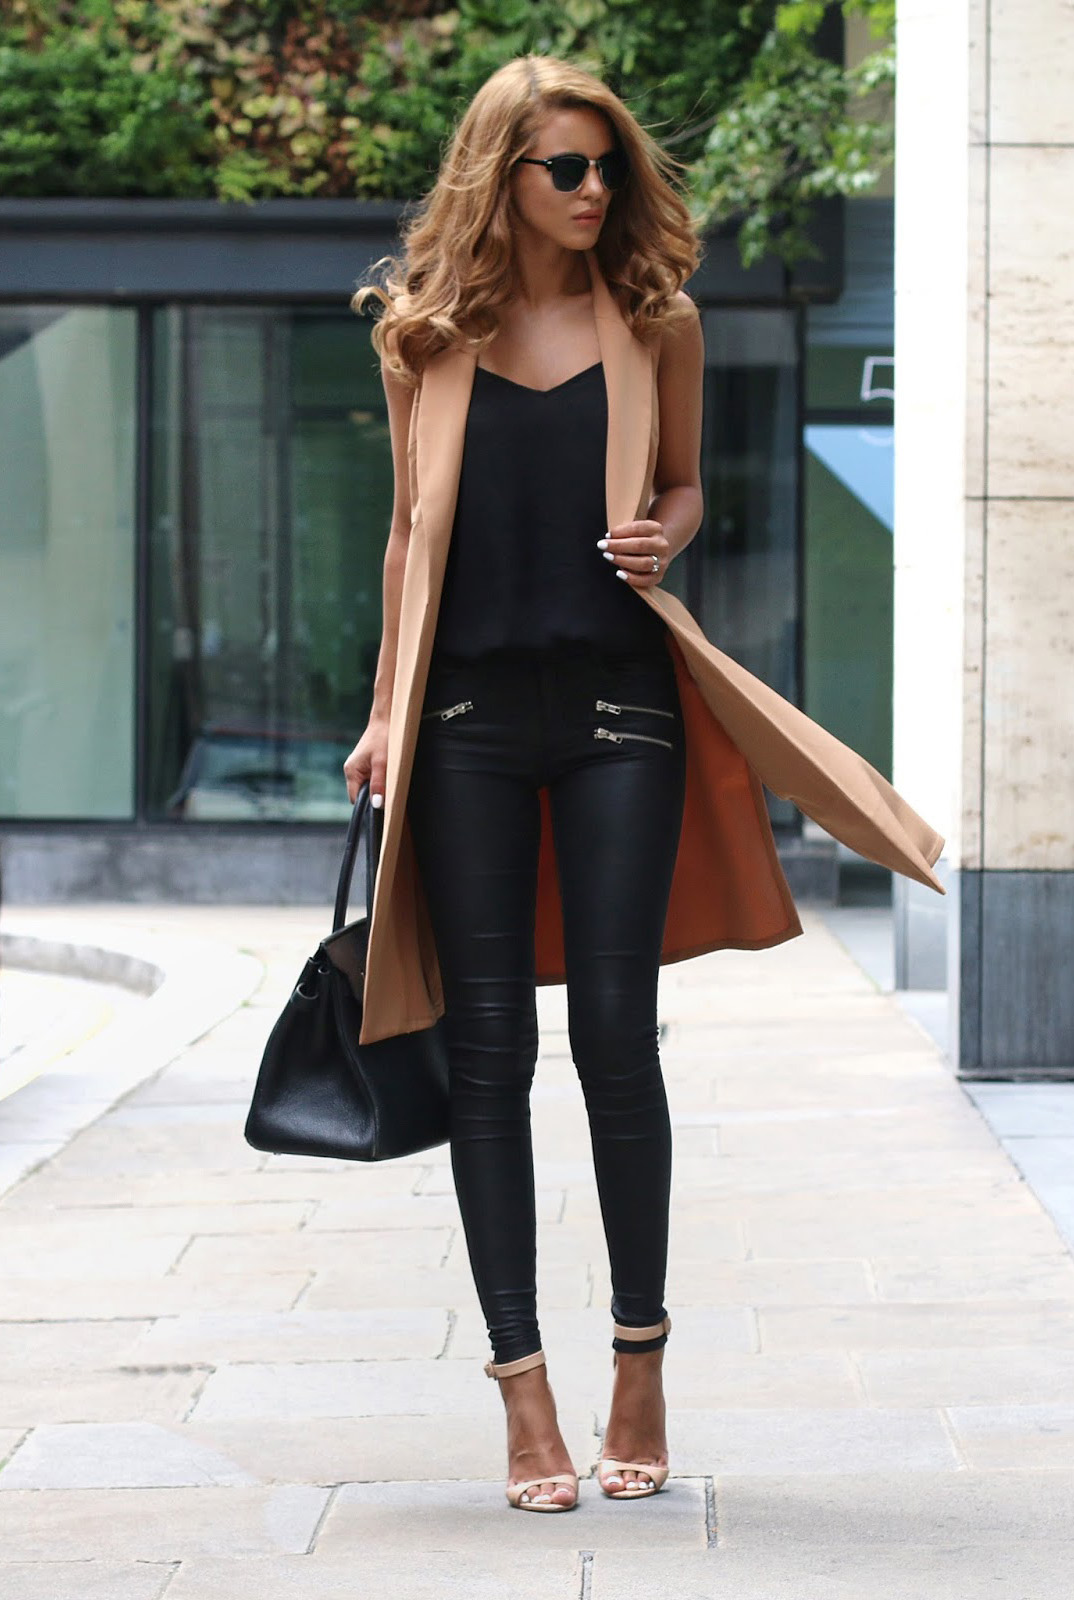 Find and save ideas about Leather jacket outfits on Pinterest. | See more ideas about Black leather jacket outfit, Leather jackets and Black leather jackets. Women's fashion. Leather jacket outfits Mini + little black dress + leather jacket + rock concert u can rock leather jacket in any ways. when u try to look at it, this outfit is simple.